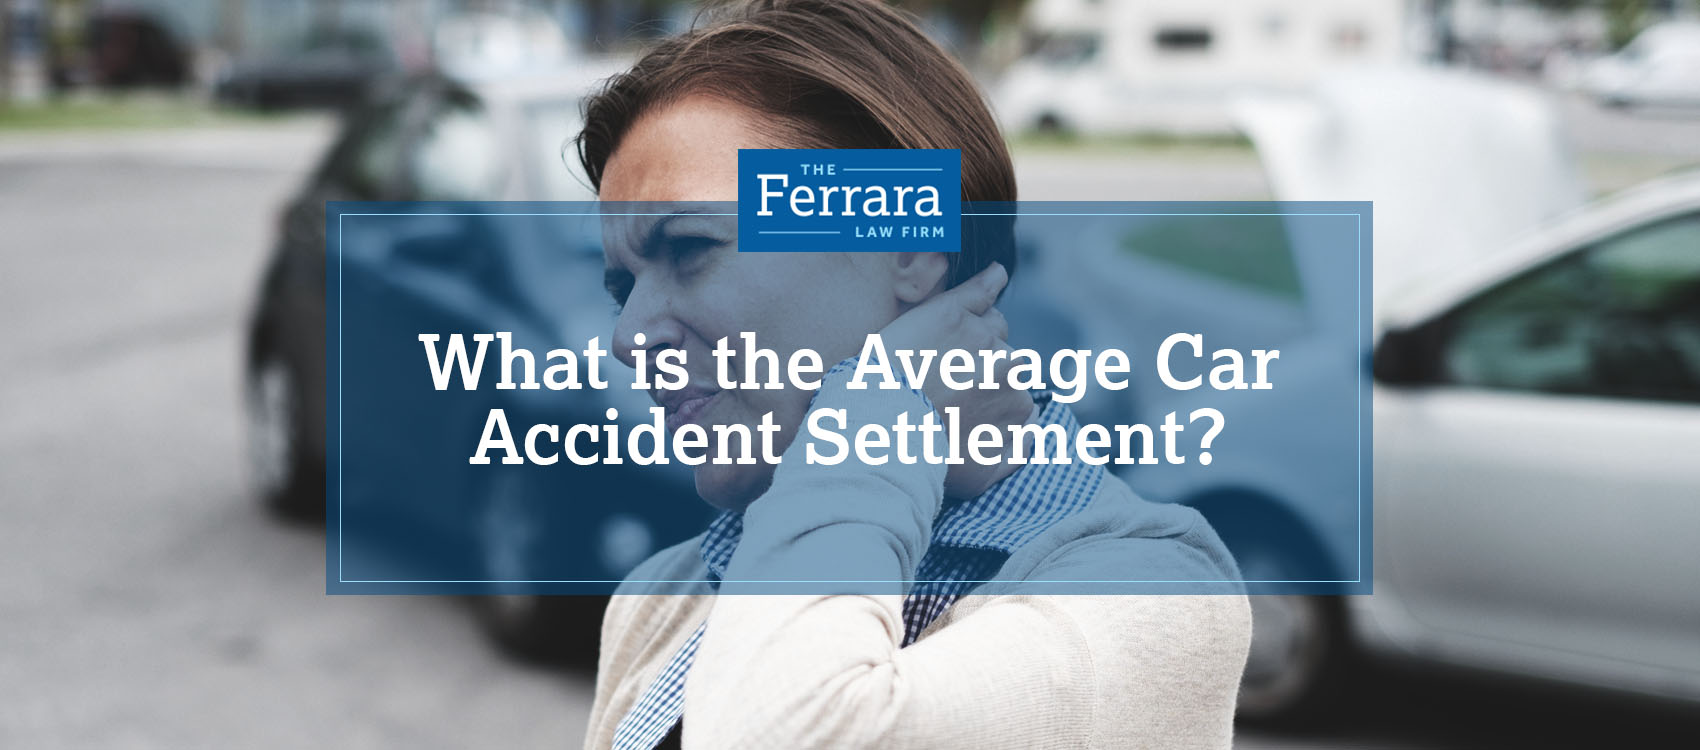 What is the Average Car Accident Settlement? | The Ferrara Law Firm